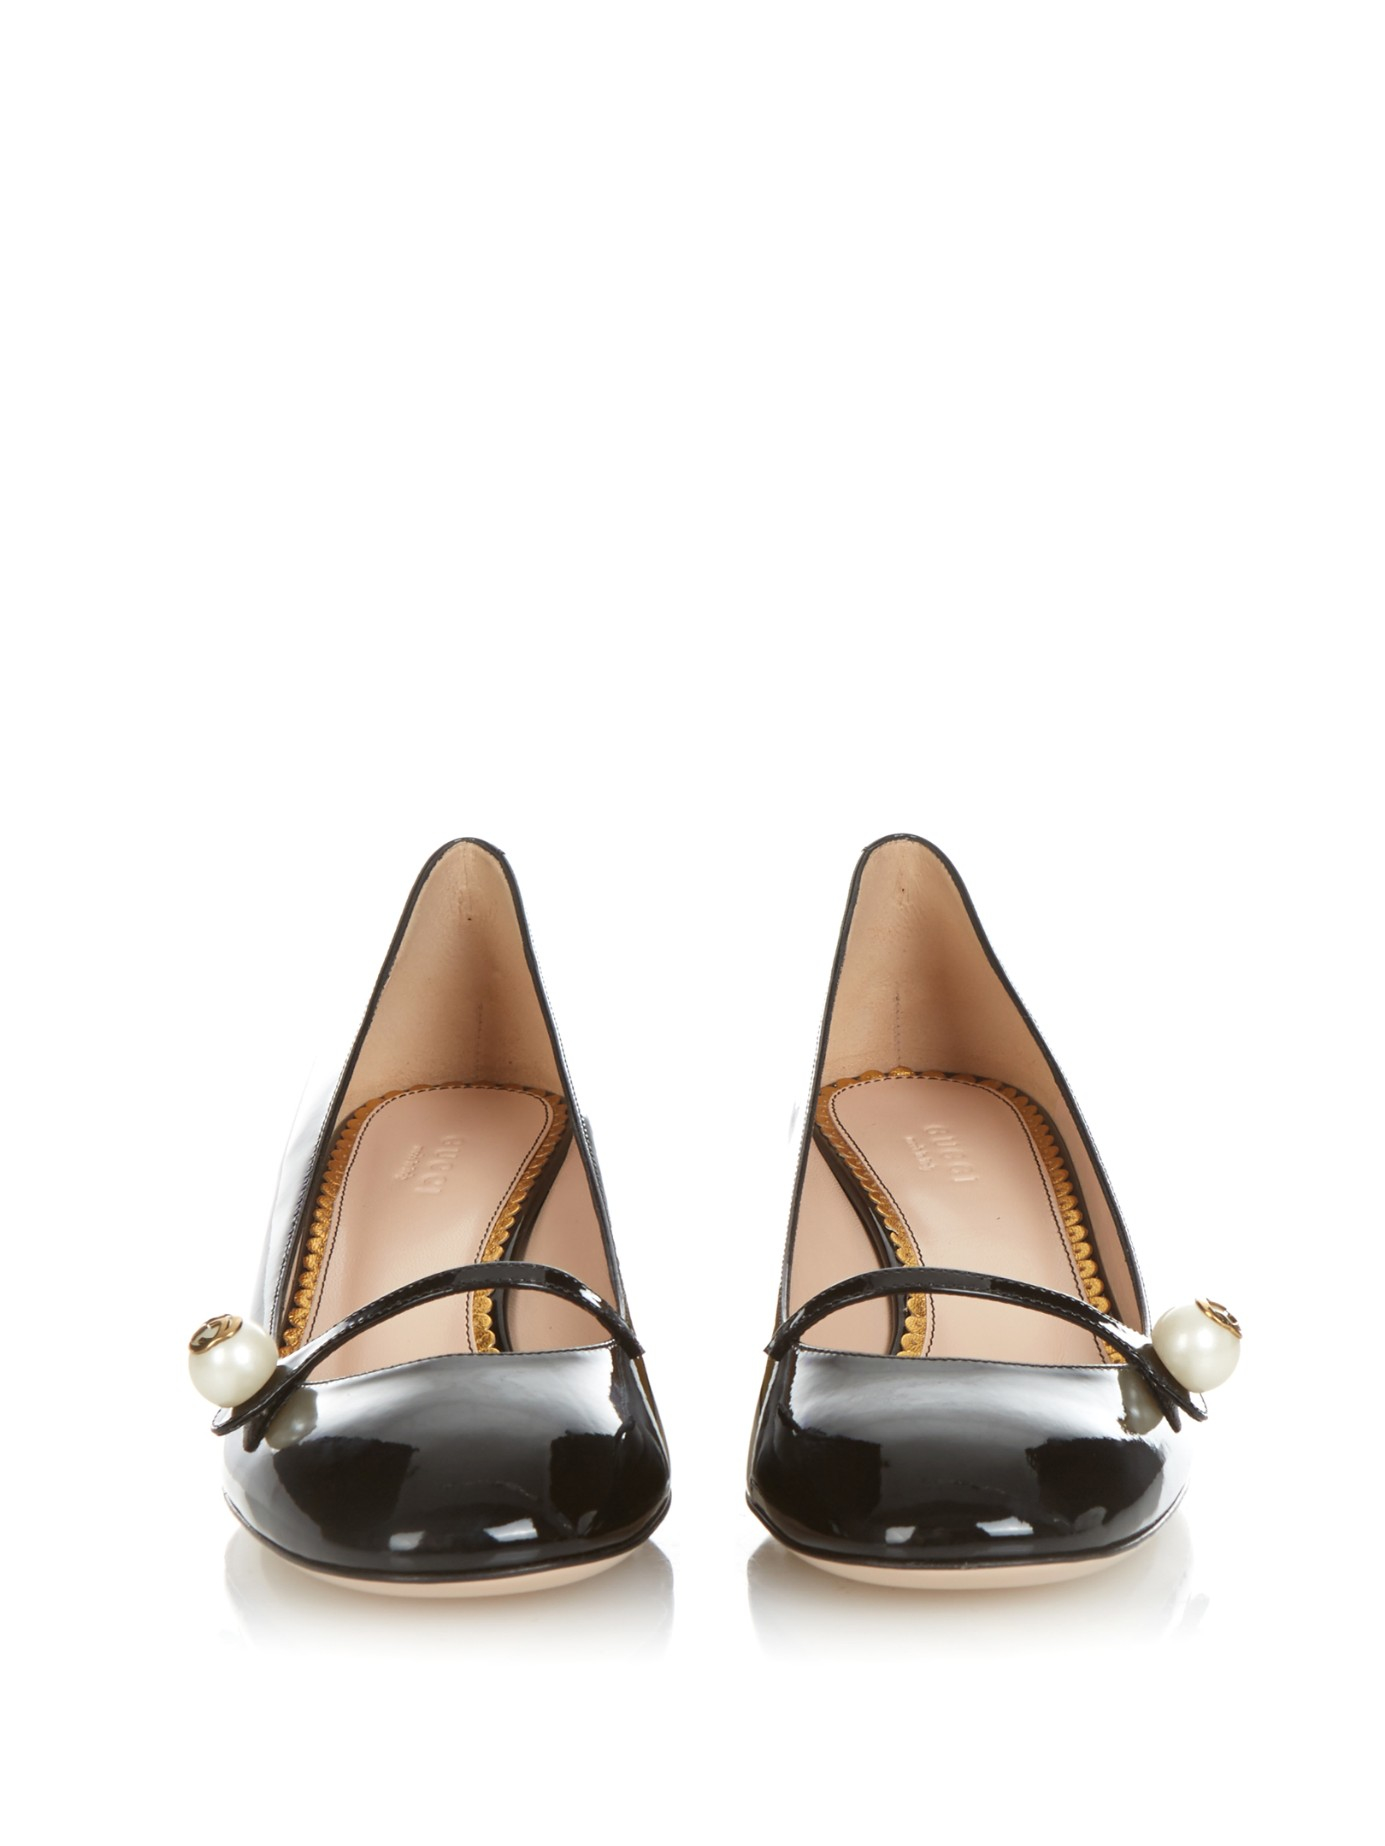 f9514529b Gucci Arielle Patent-leather Pumps in Black - Lyst